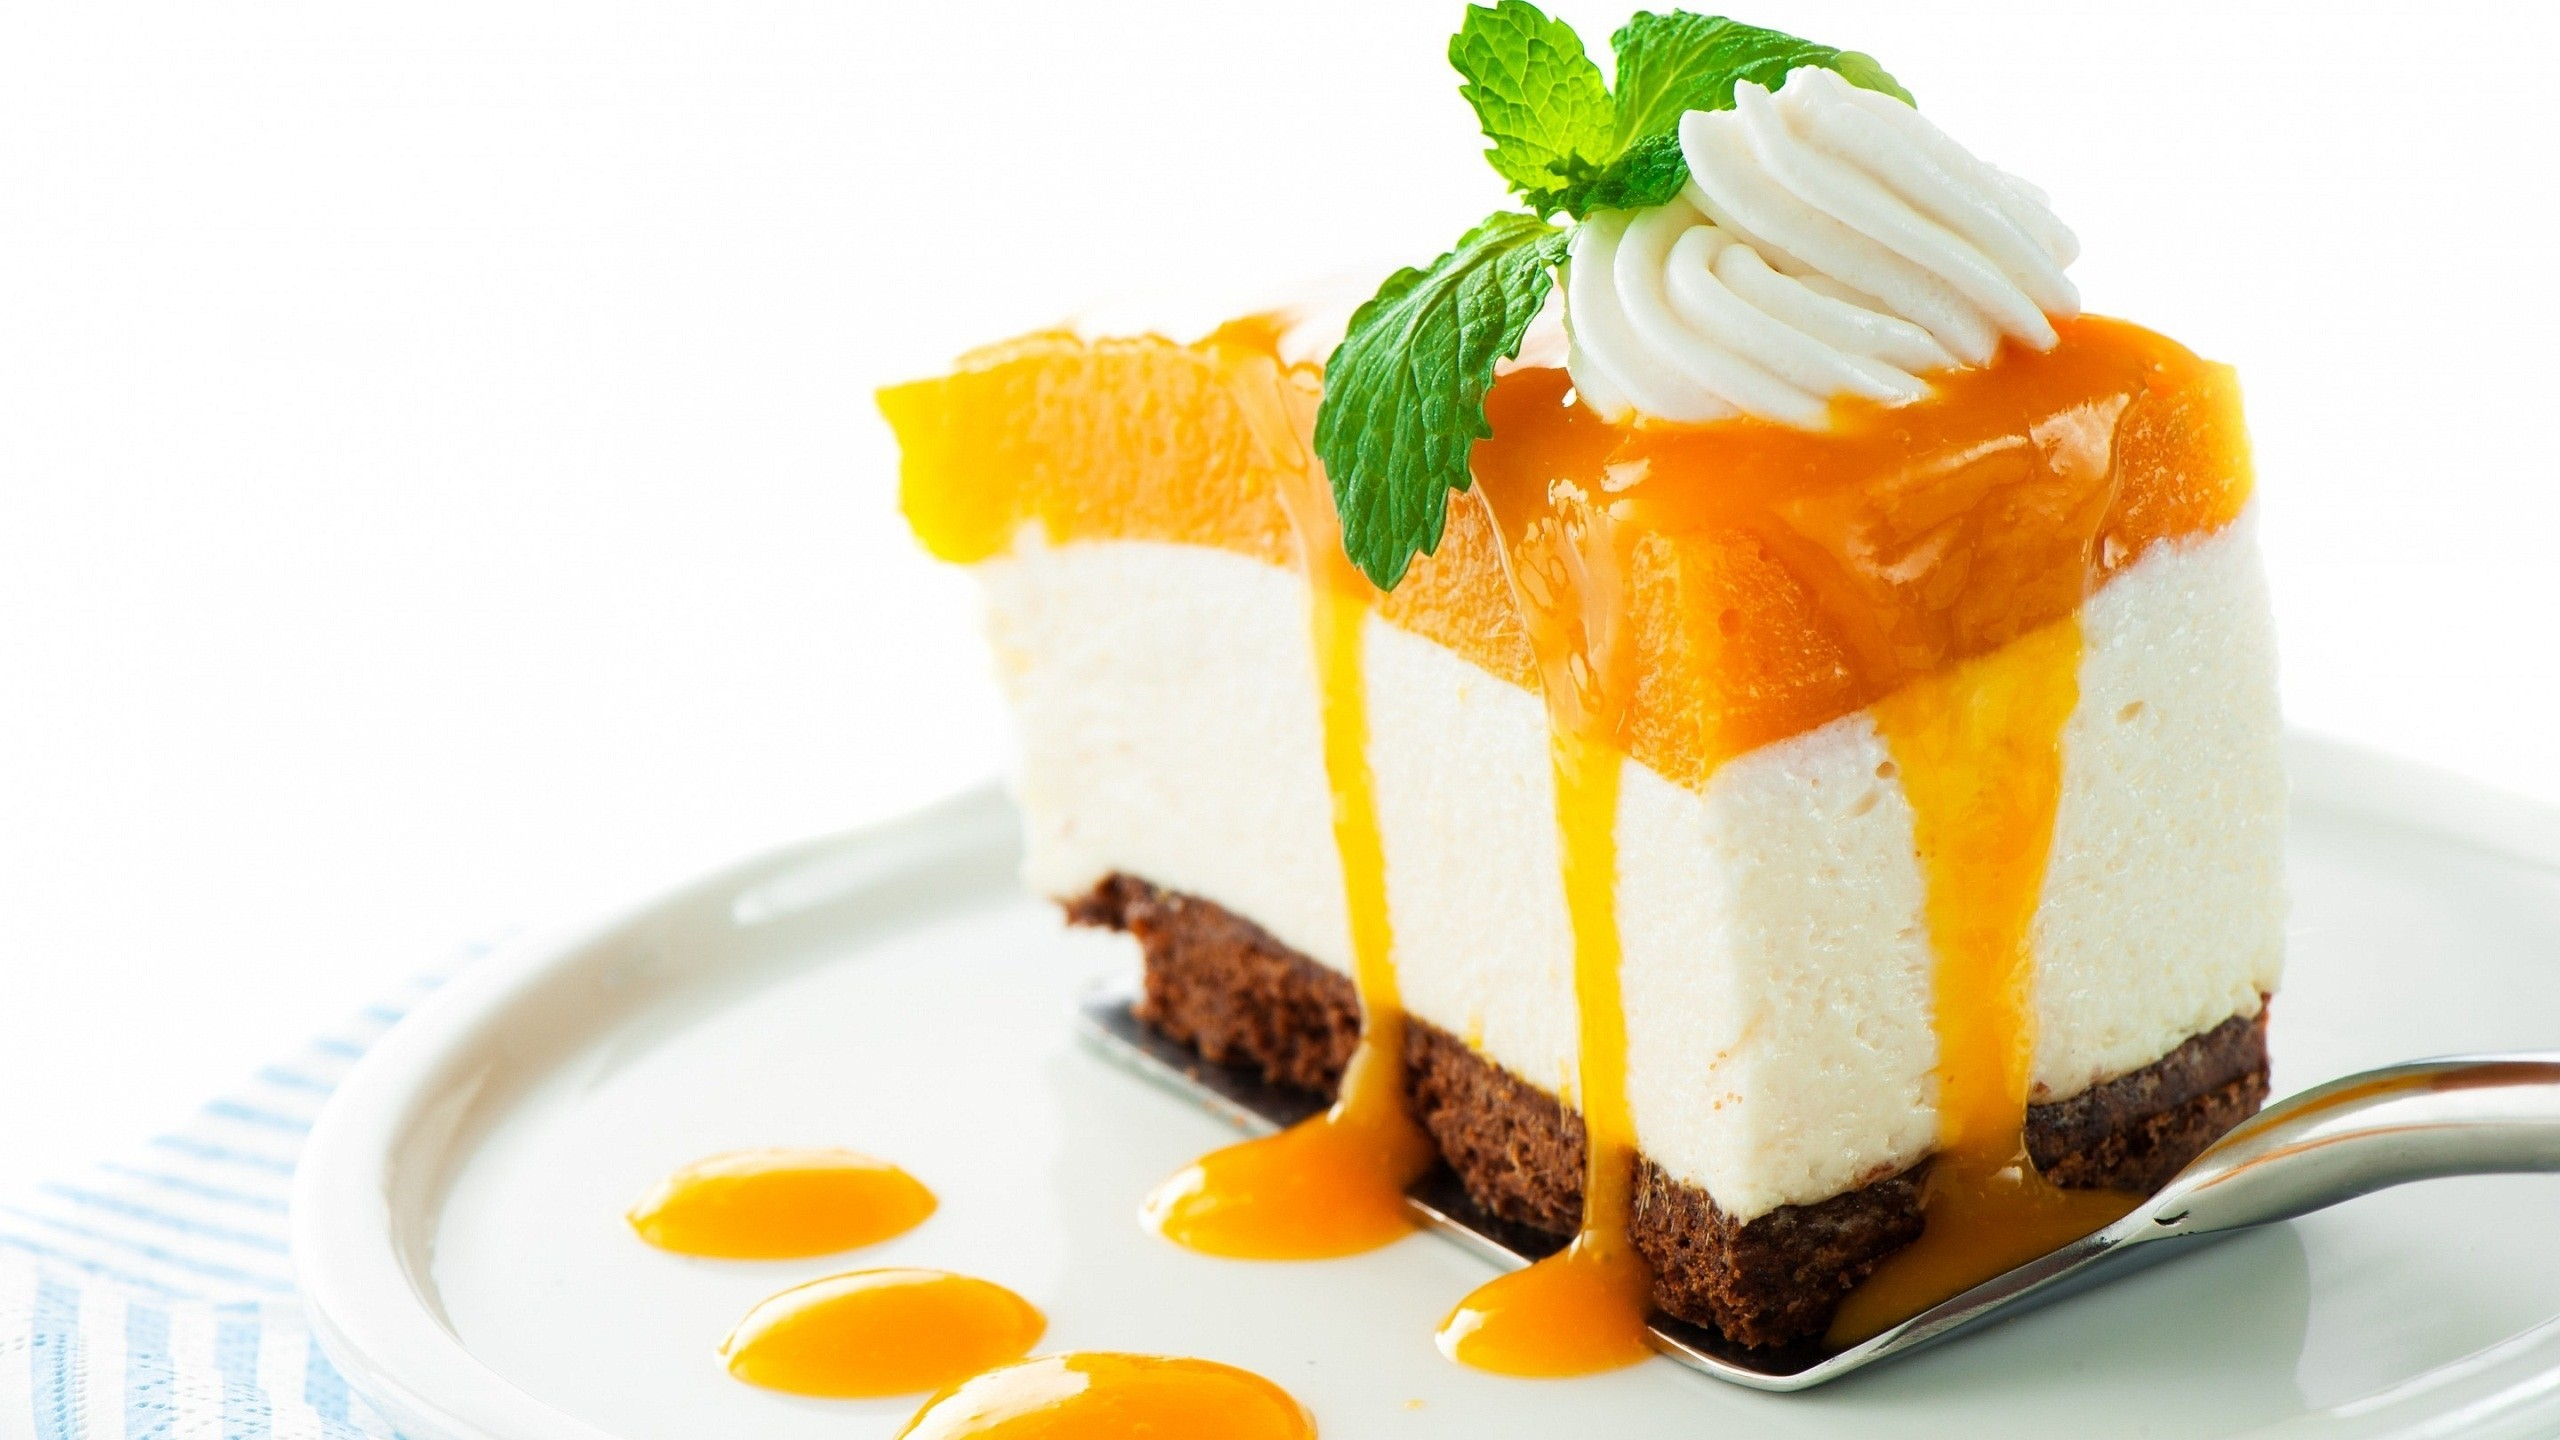 2560x1440 mango-cake-wallpaper-5922-6190-hd-wallpapers